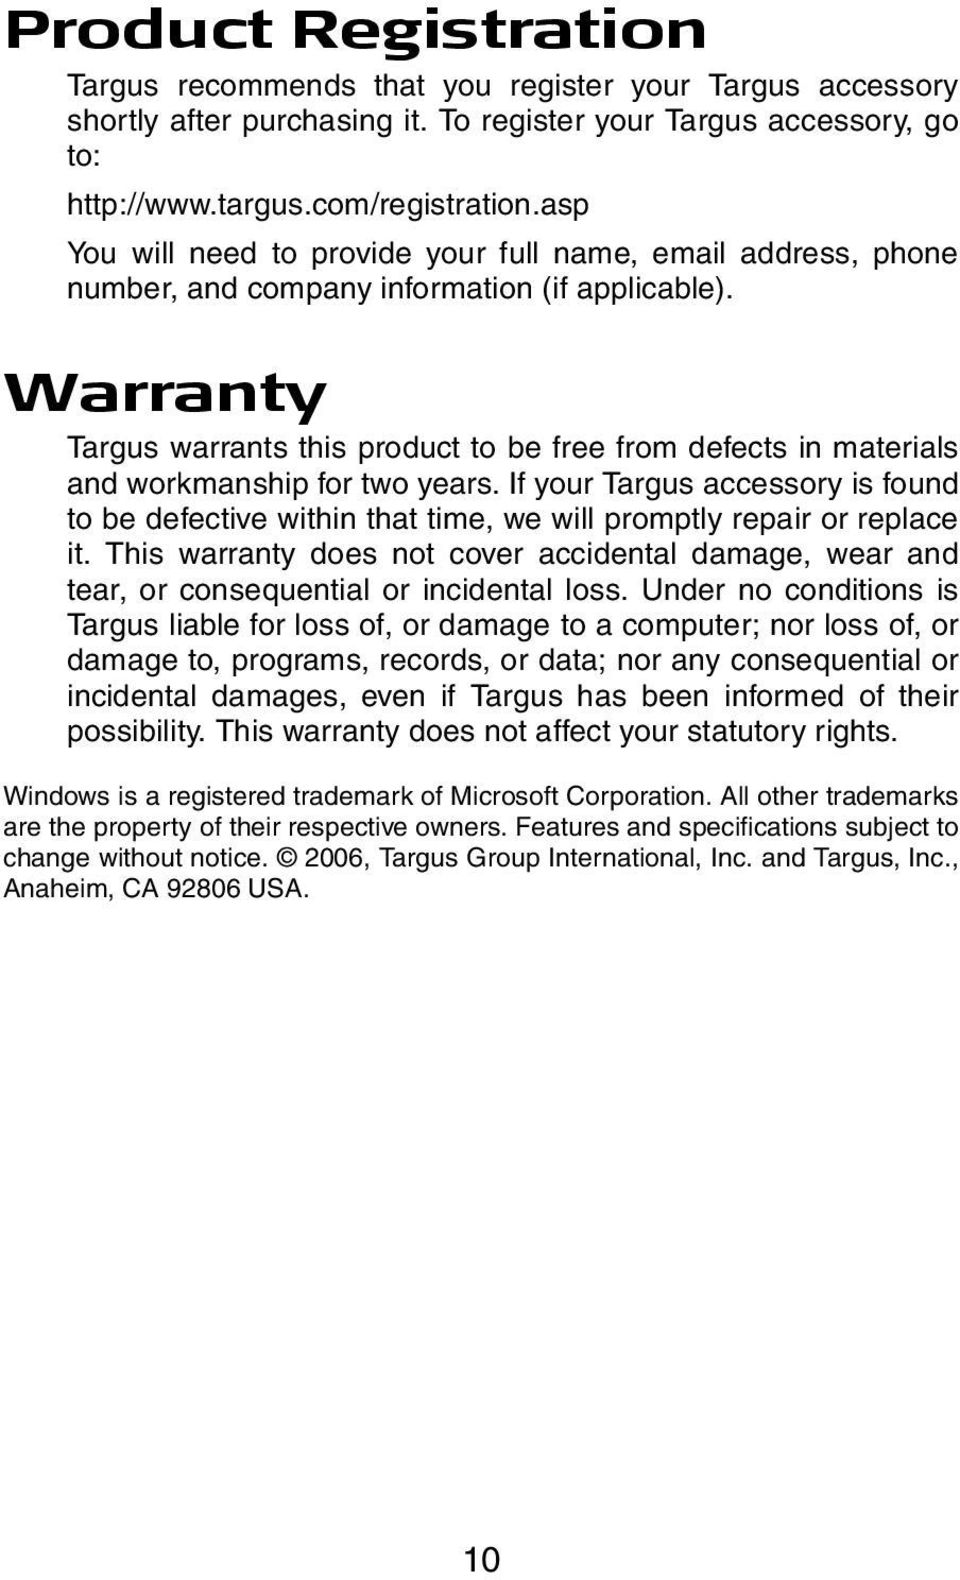 Warranty Targus warrants this product to be free from defects in materials and workmanship for two years.